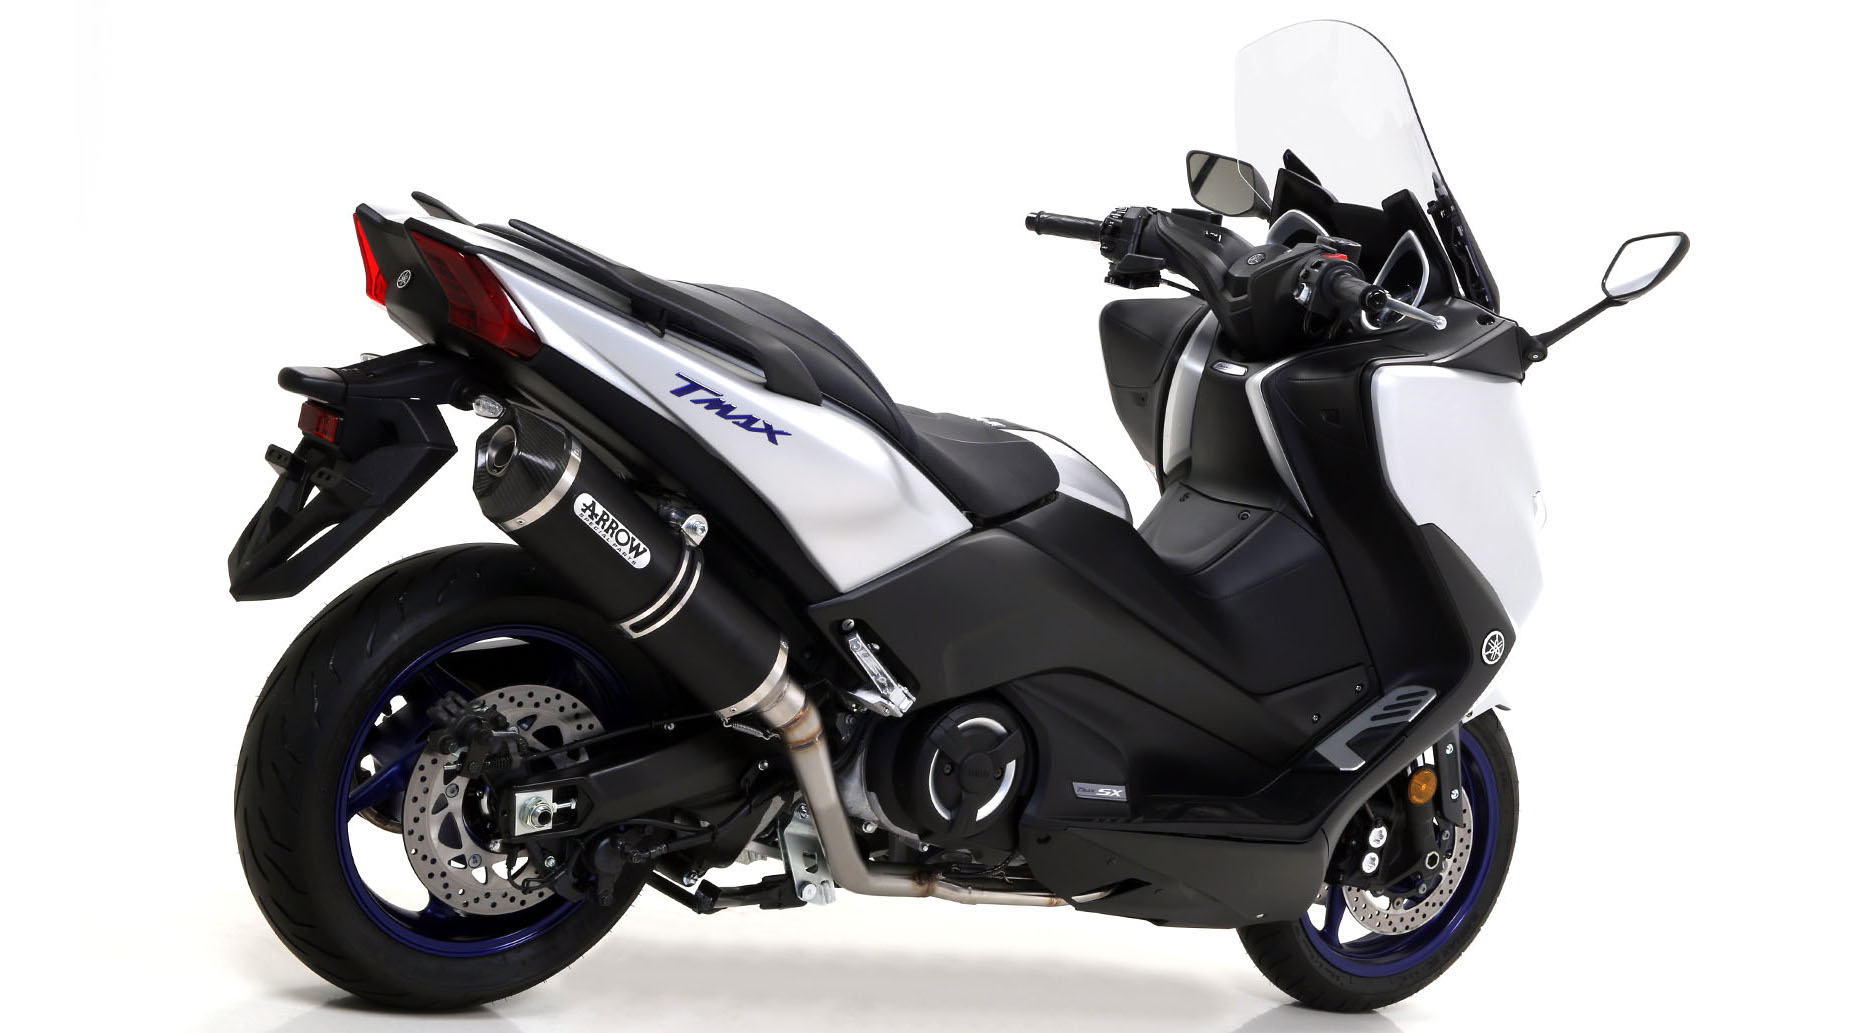 arrow race tech silencer system yamaha t max 530 2017. Black Bedroom Furniture Sets. Home Design Ideas